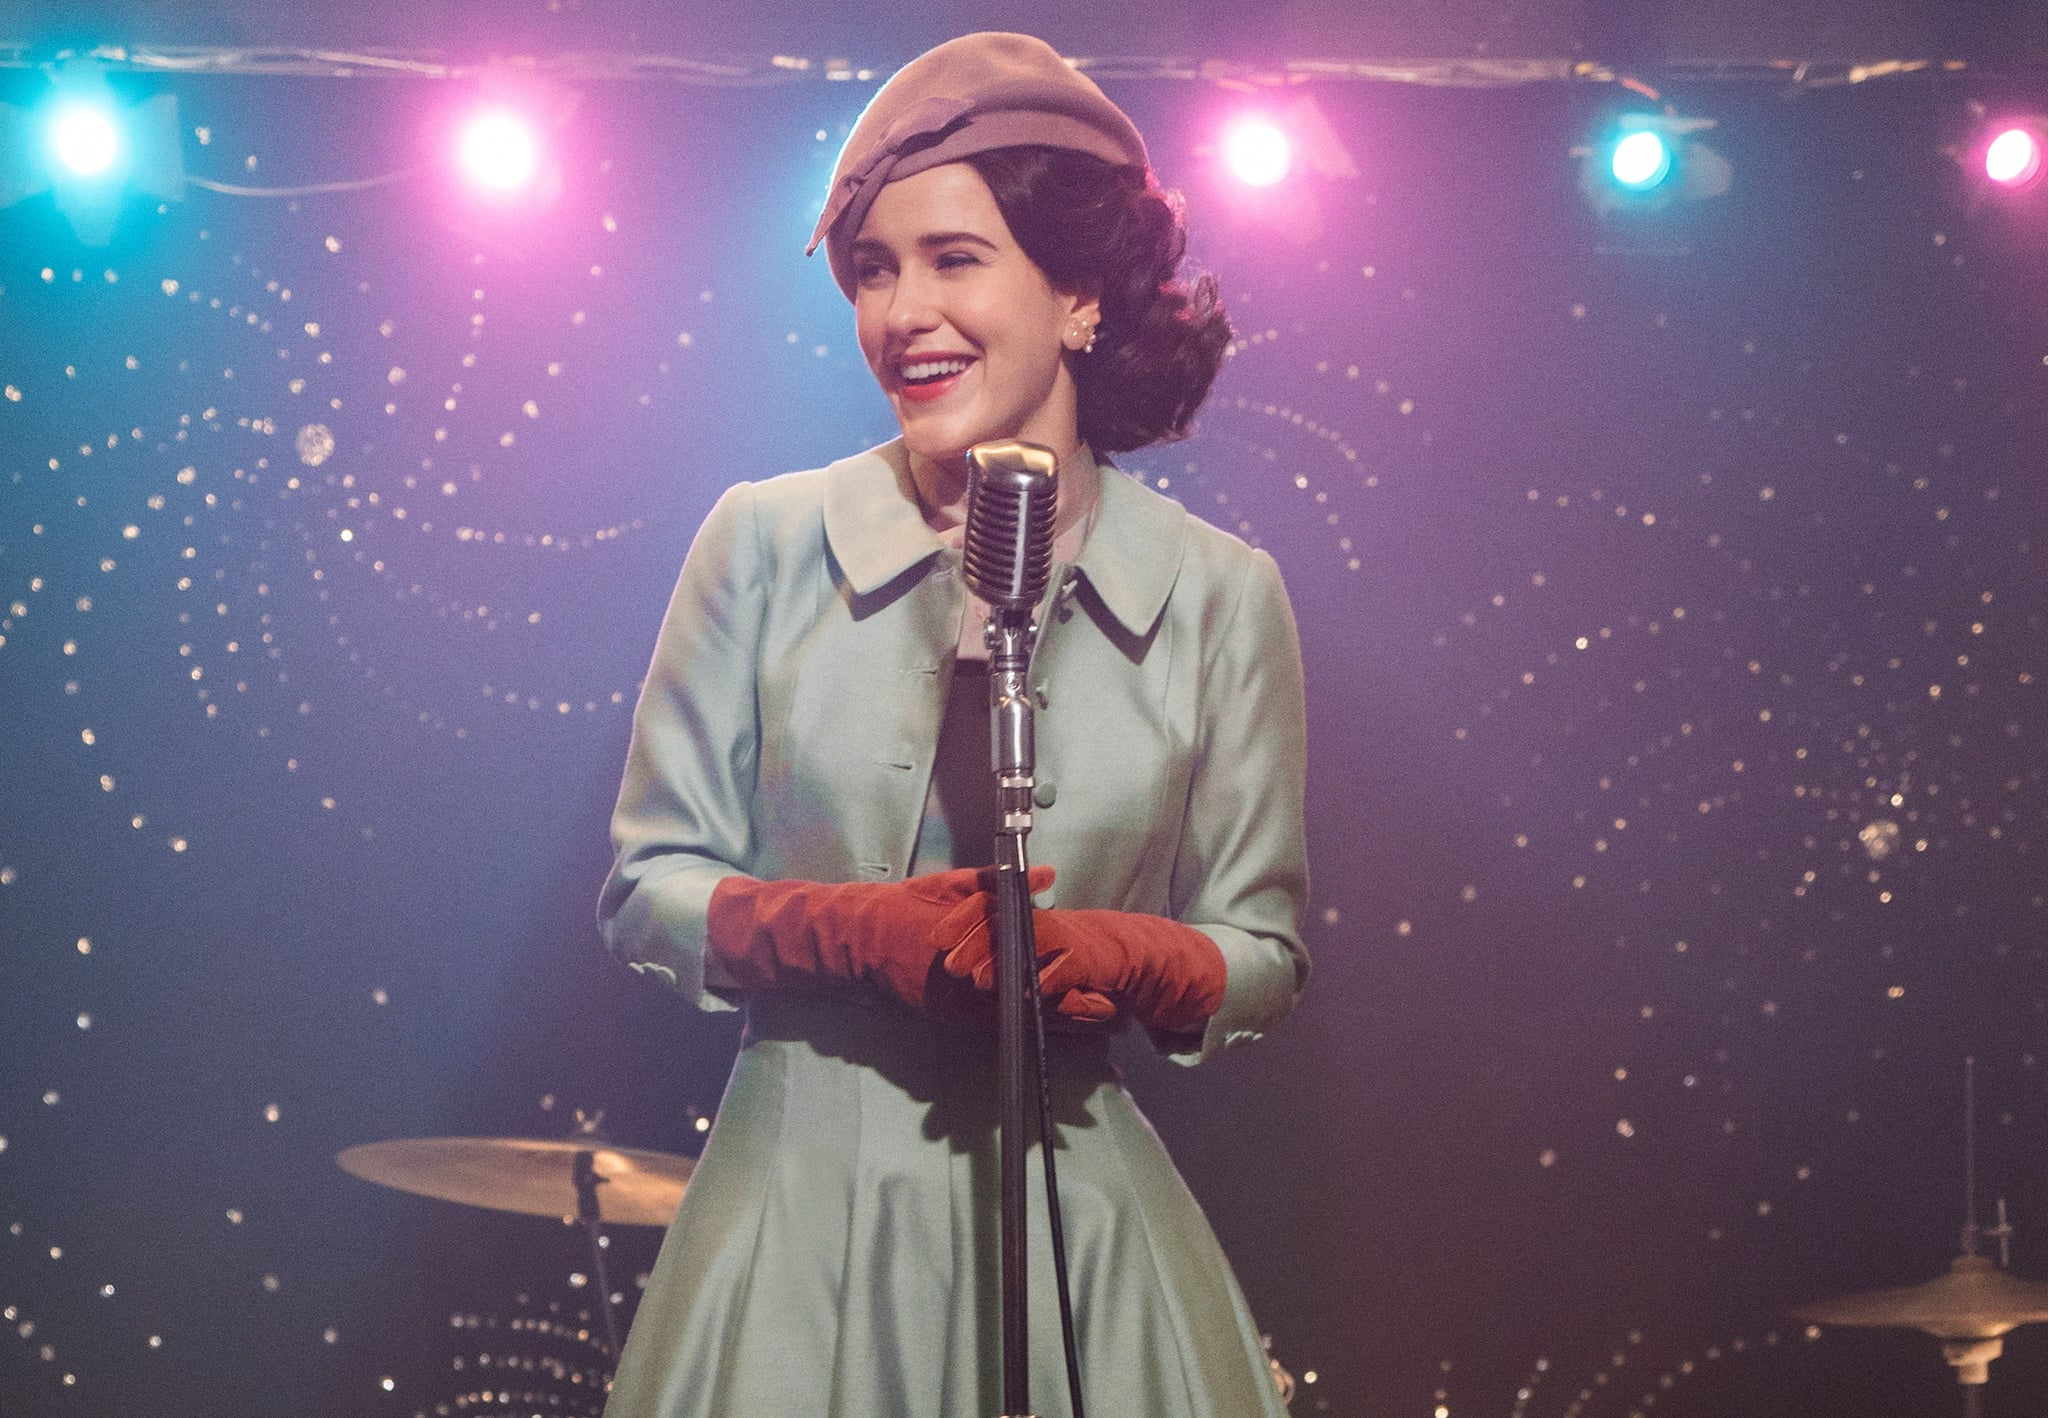 THE MARVELOUS MRS. MAISEL, Rachel Brosnahan, 'Simone', (Season 2, ep. 201, aired Dec. 5, 2018). photo: Nicole Rivelli / Amazon / Courtesy: Everett Collection